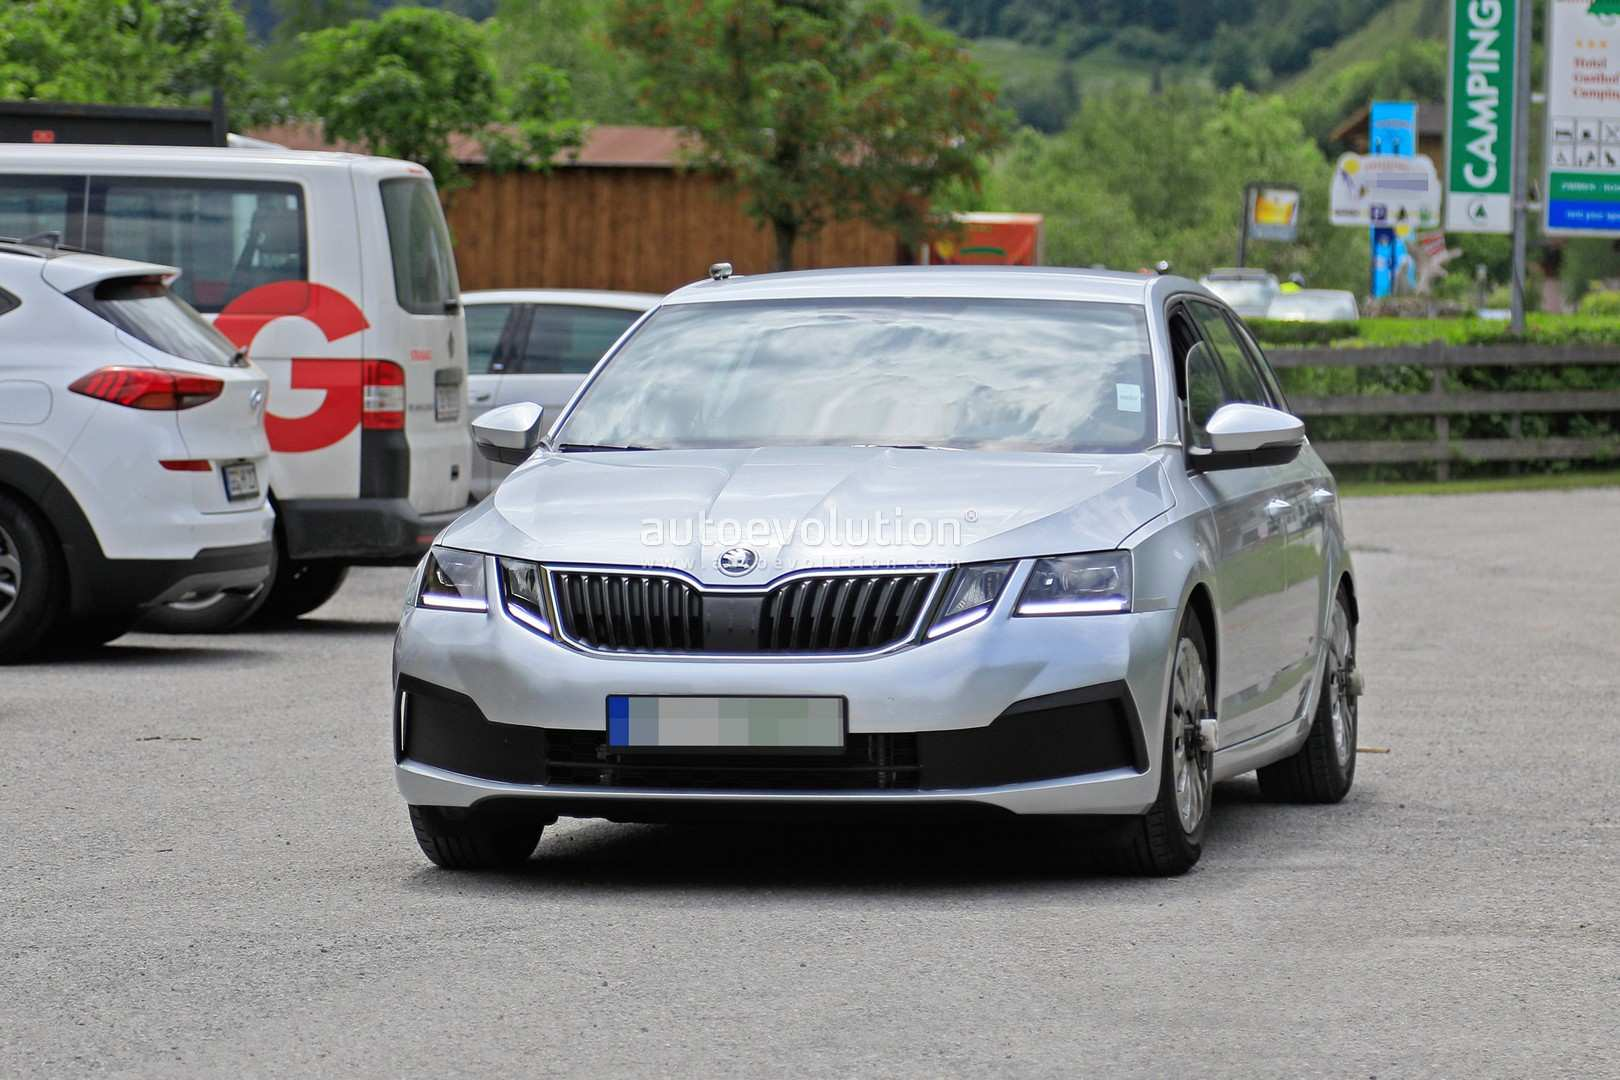 56 New Spy Shots 2020 Skoda Superb Concept with Spy Shots 2020 Skoda Superb